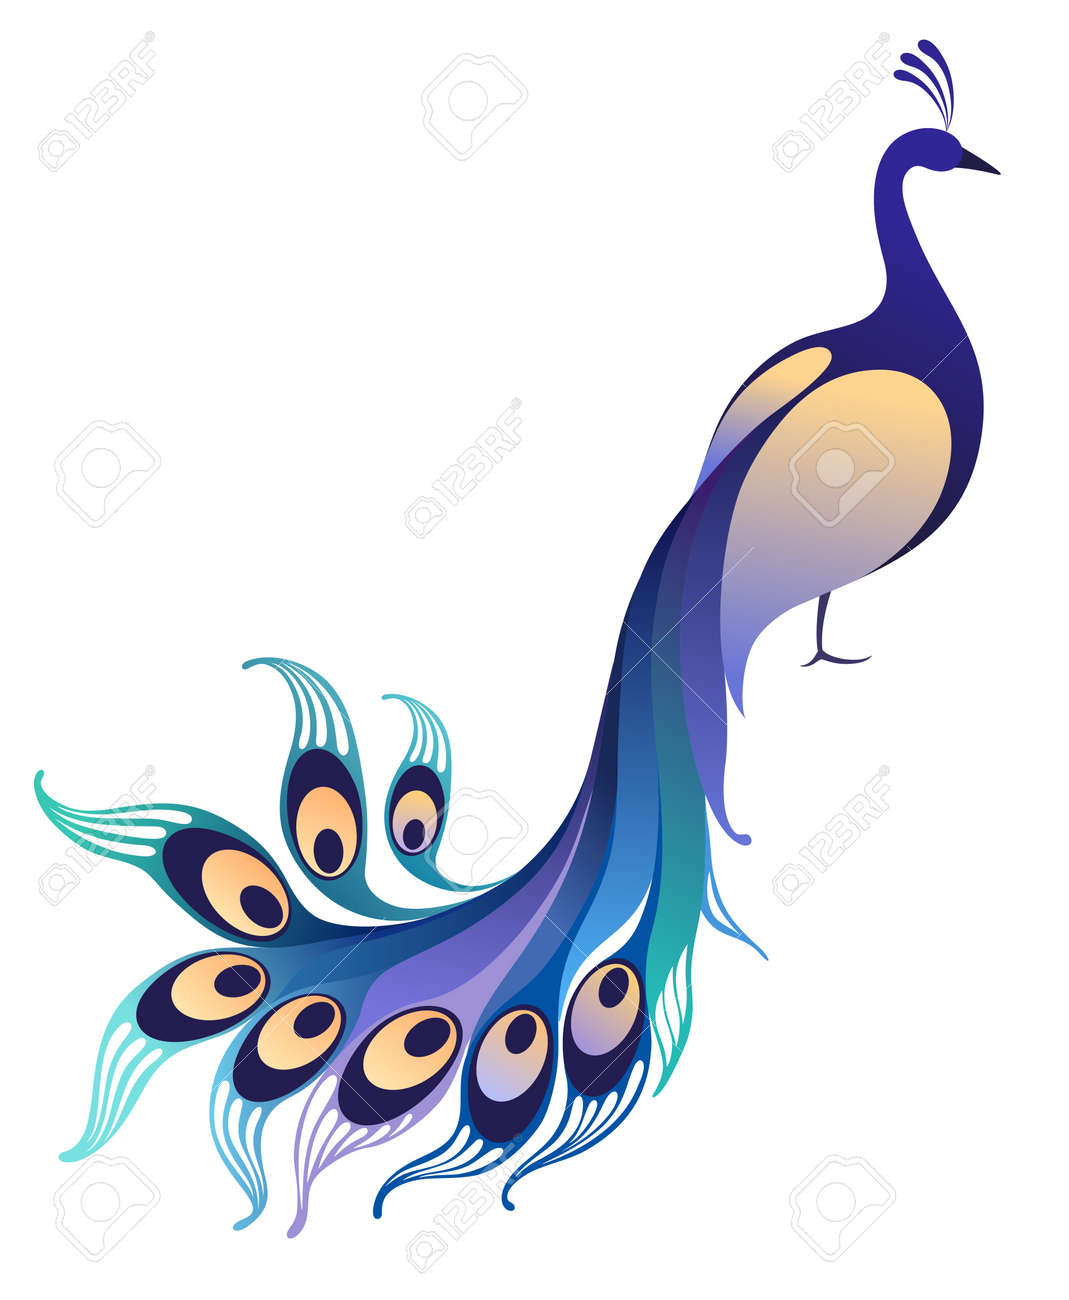 7 463 peacock feather stock vector illustration and royalty free rh 123rf com peacock vector plasma ready to cut peacock vector art